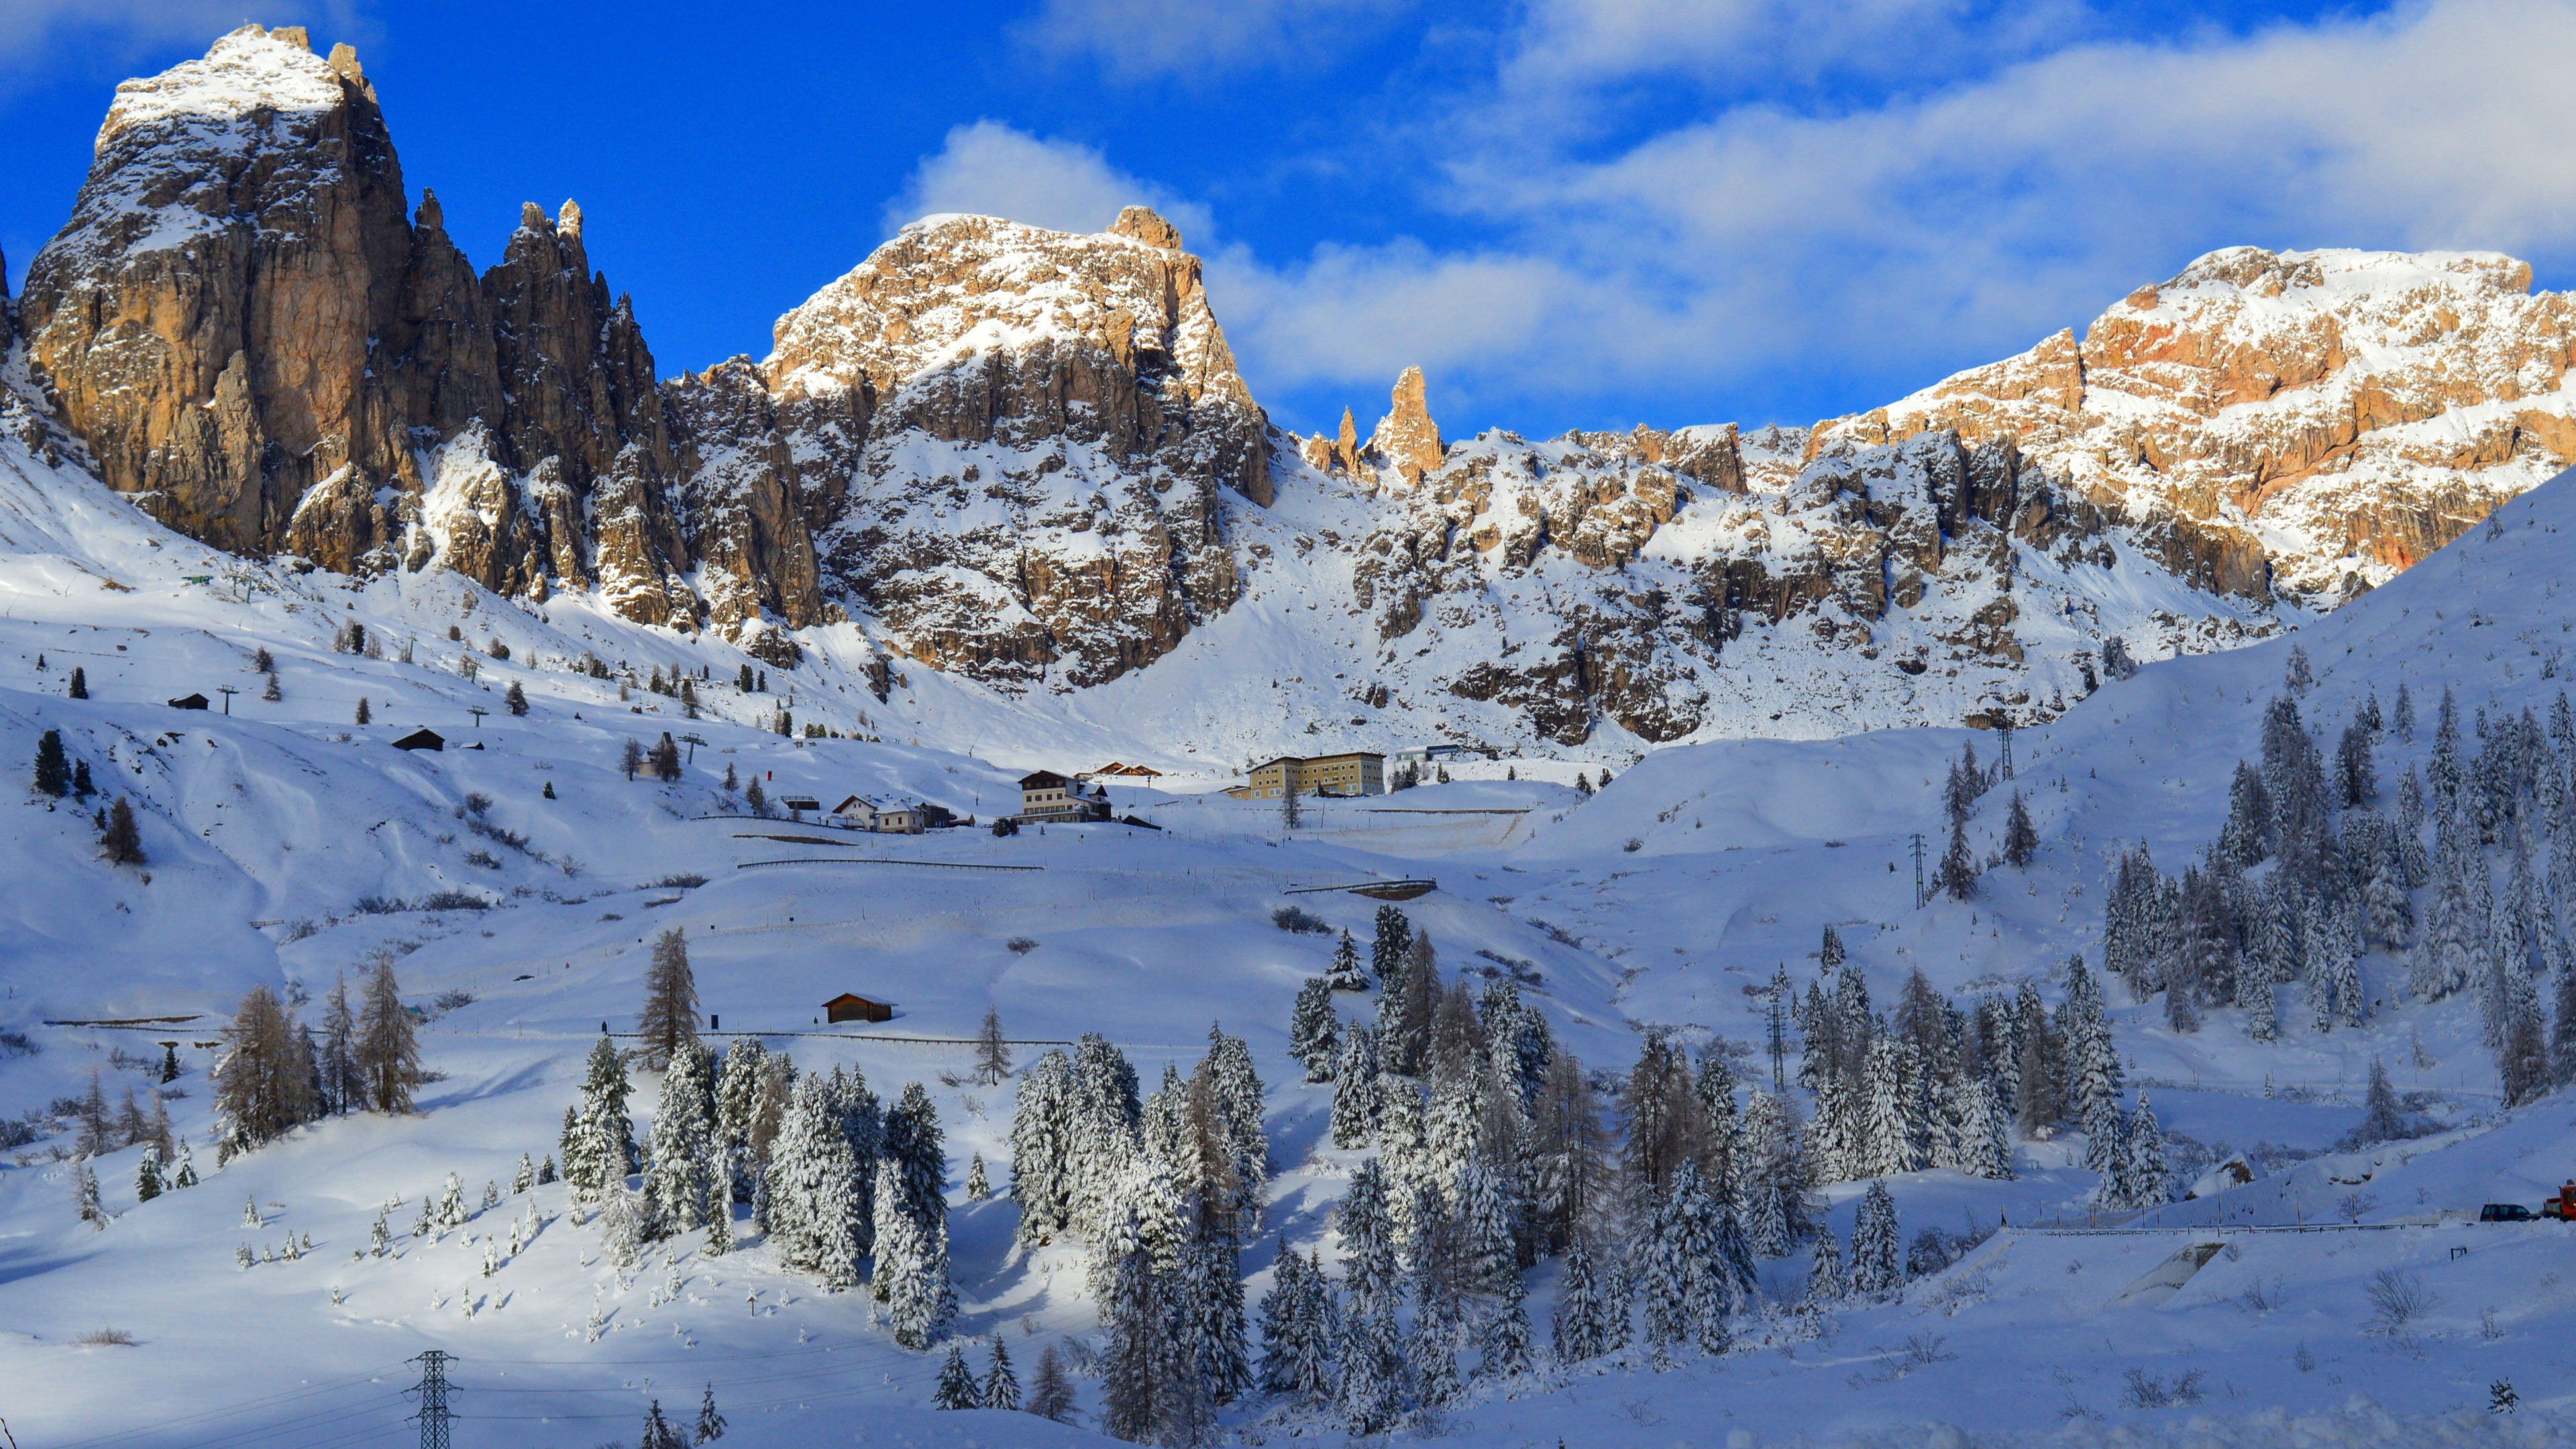 Flowers Hd Wallpapers With Quotes Wallpaper Dolomites Alps Mountains Snow Winter Trees